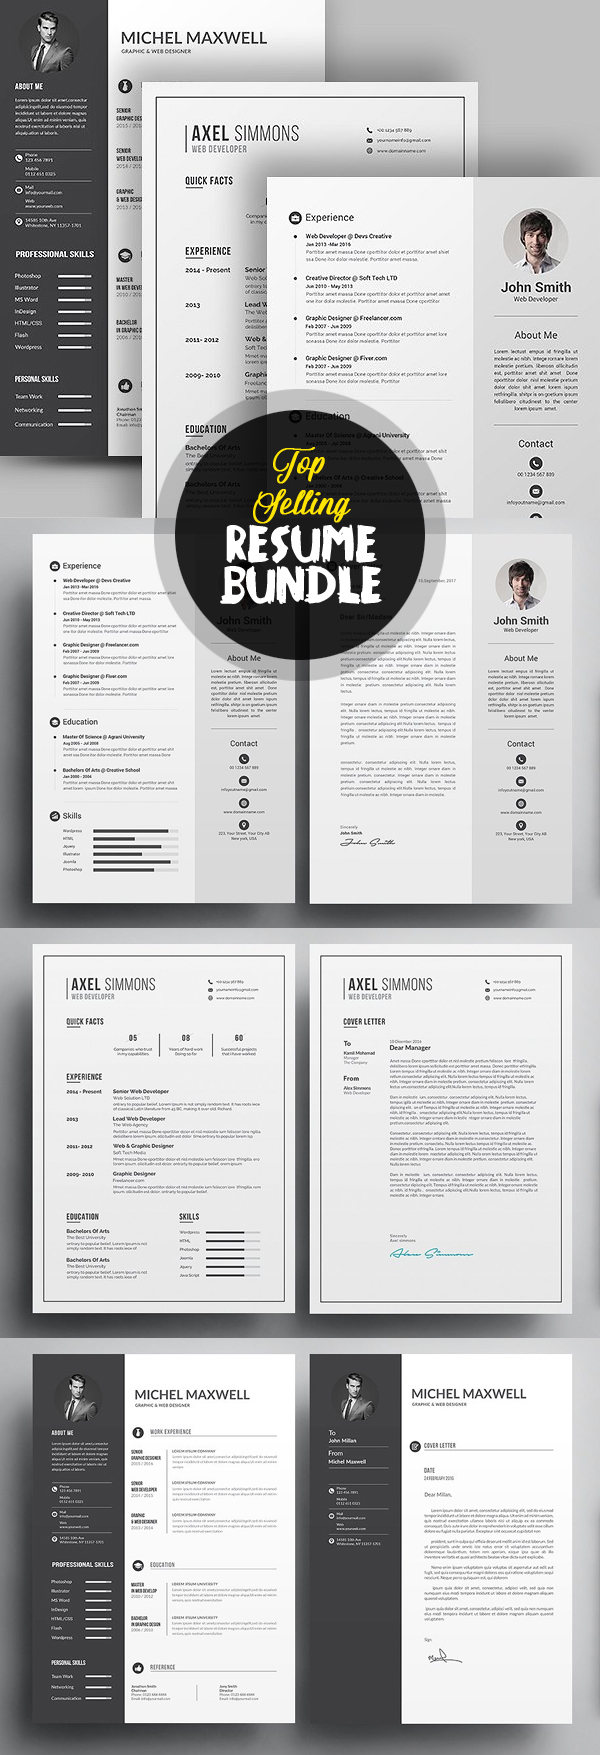 Top Selling Resume/CV Bundle